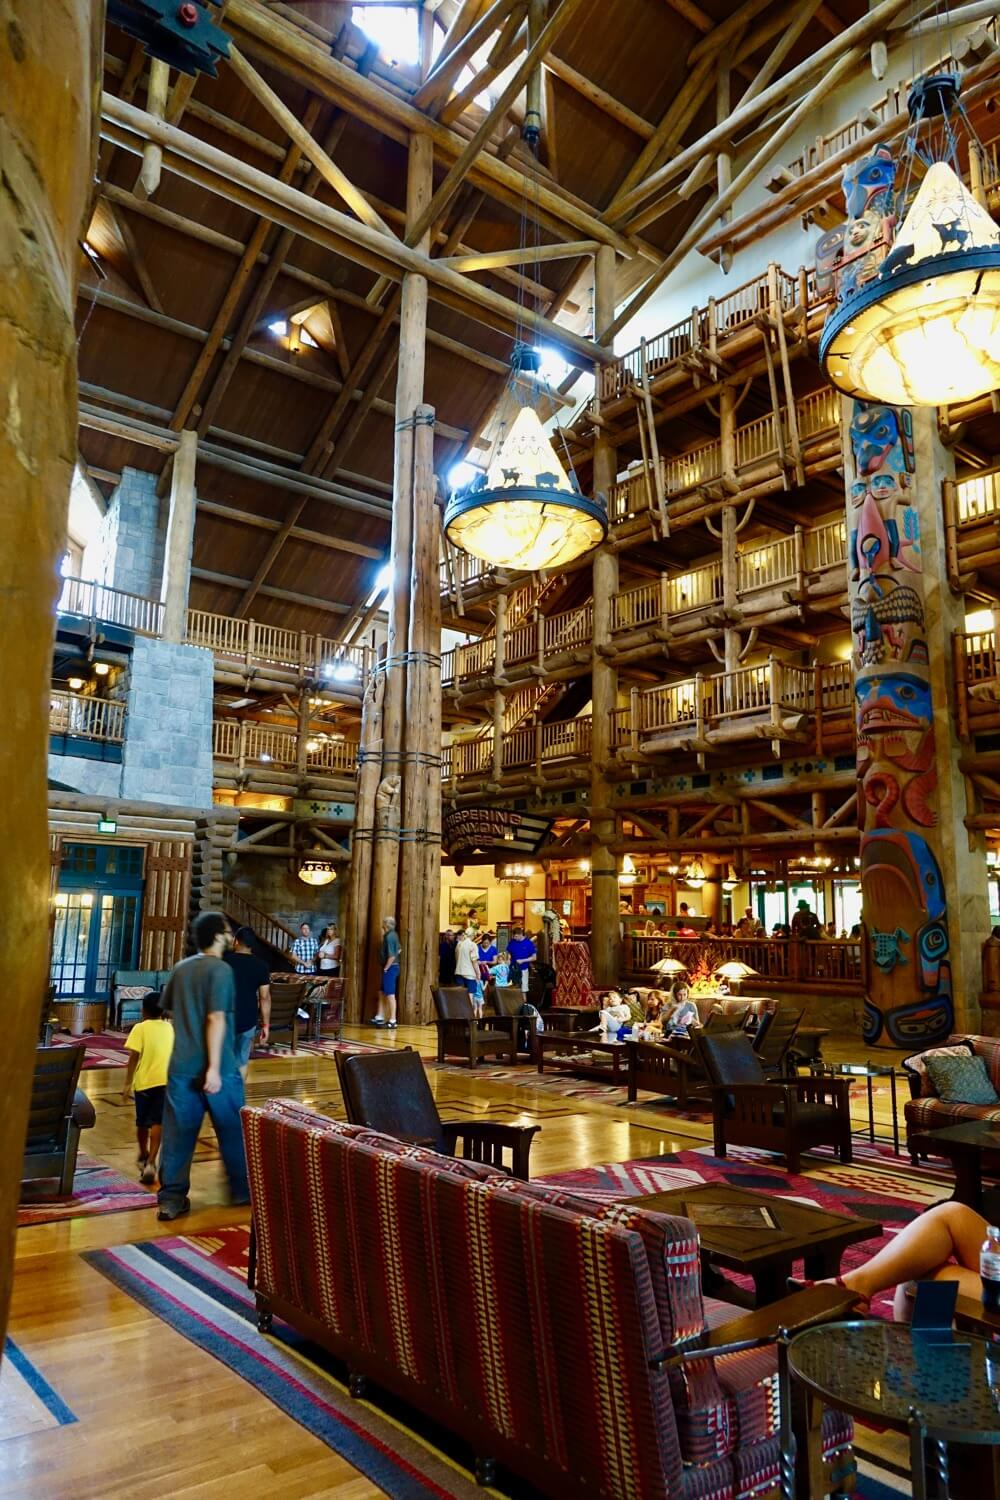 Disney World Deluxe Resort Hotel - Wilderness Lodge Lobby